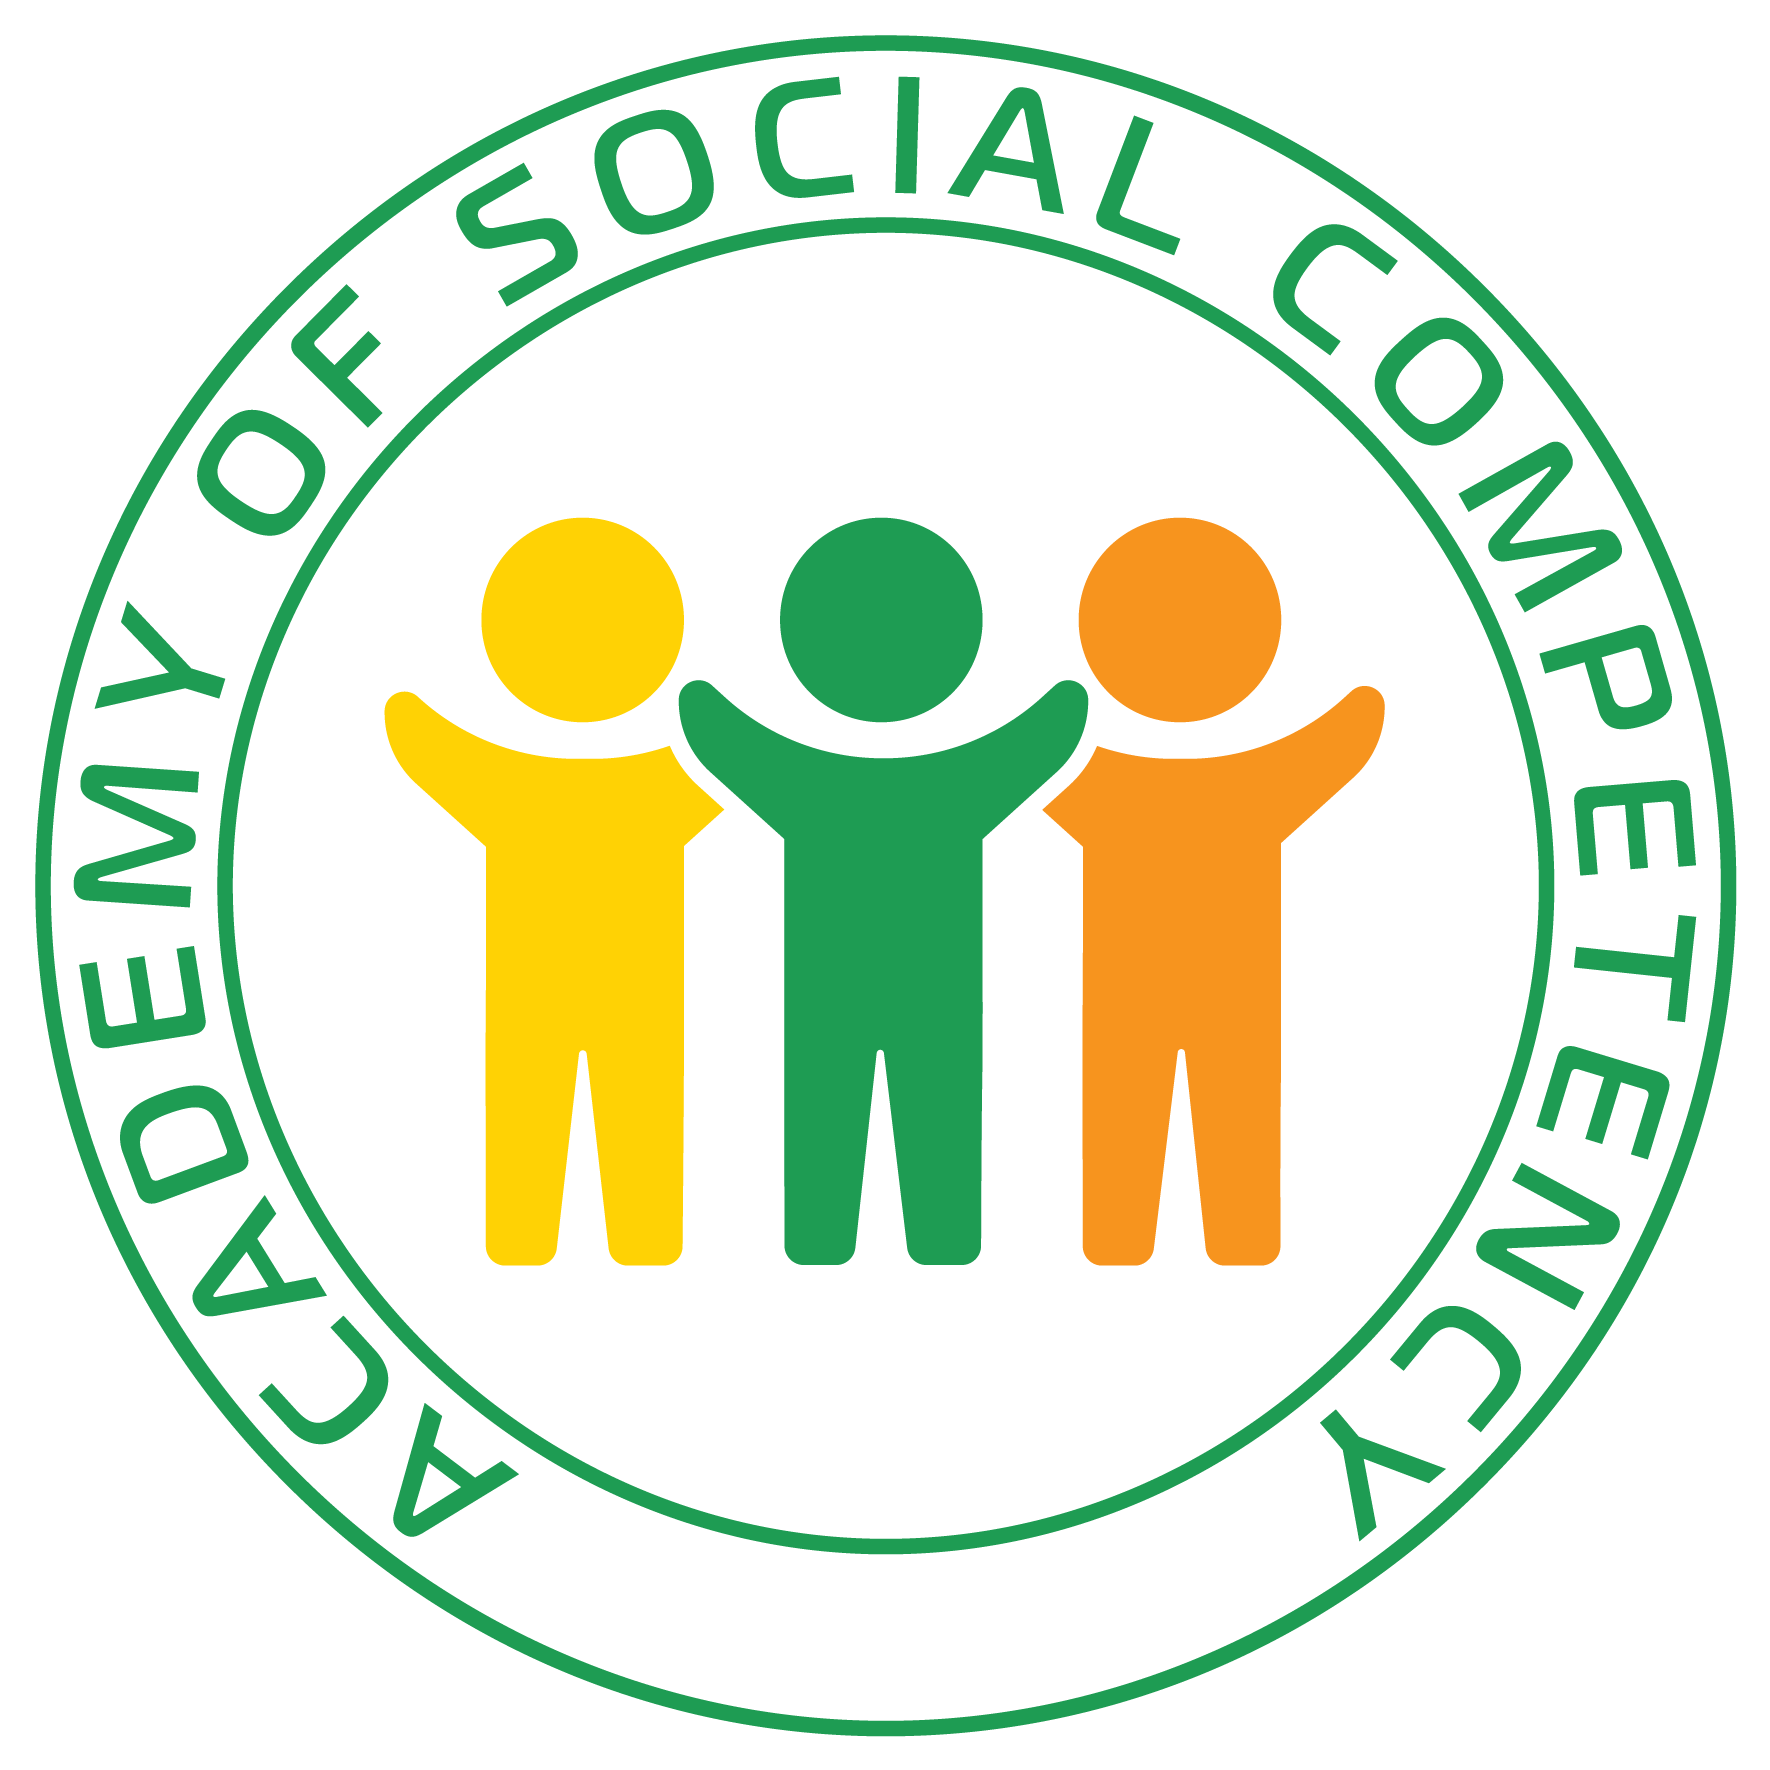 Academy of Social Competency